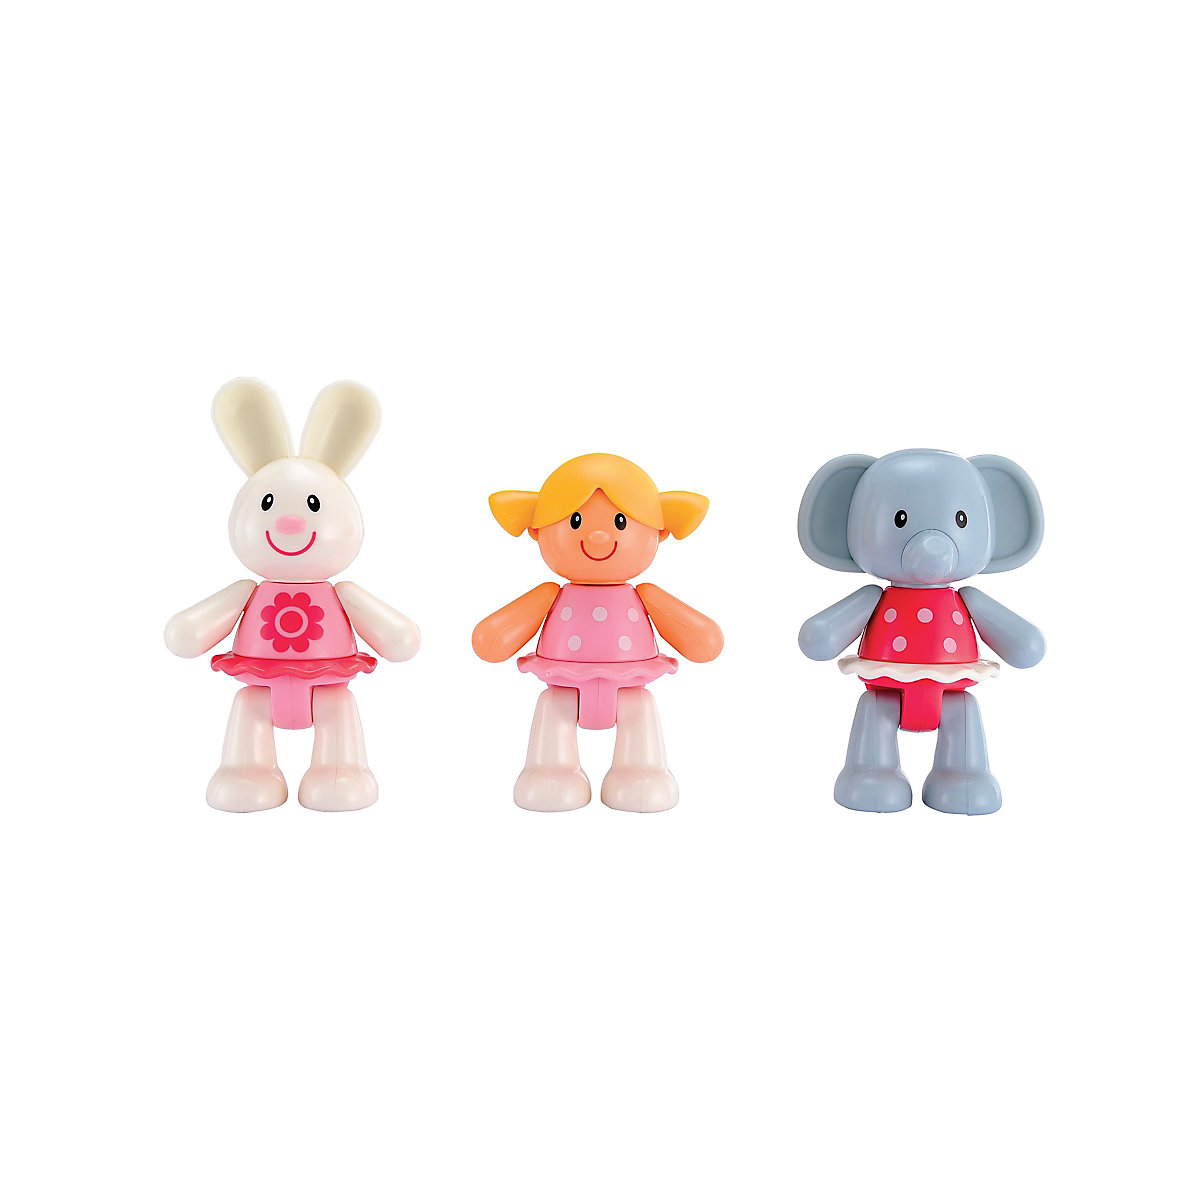 New ELC Boys and Girls Toybox Friends Set Toy From 12 months - Early Learning Centre Gifts